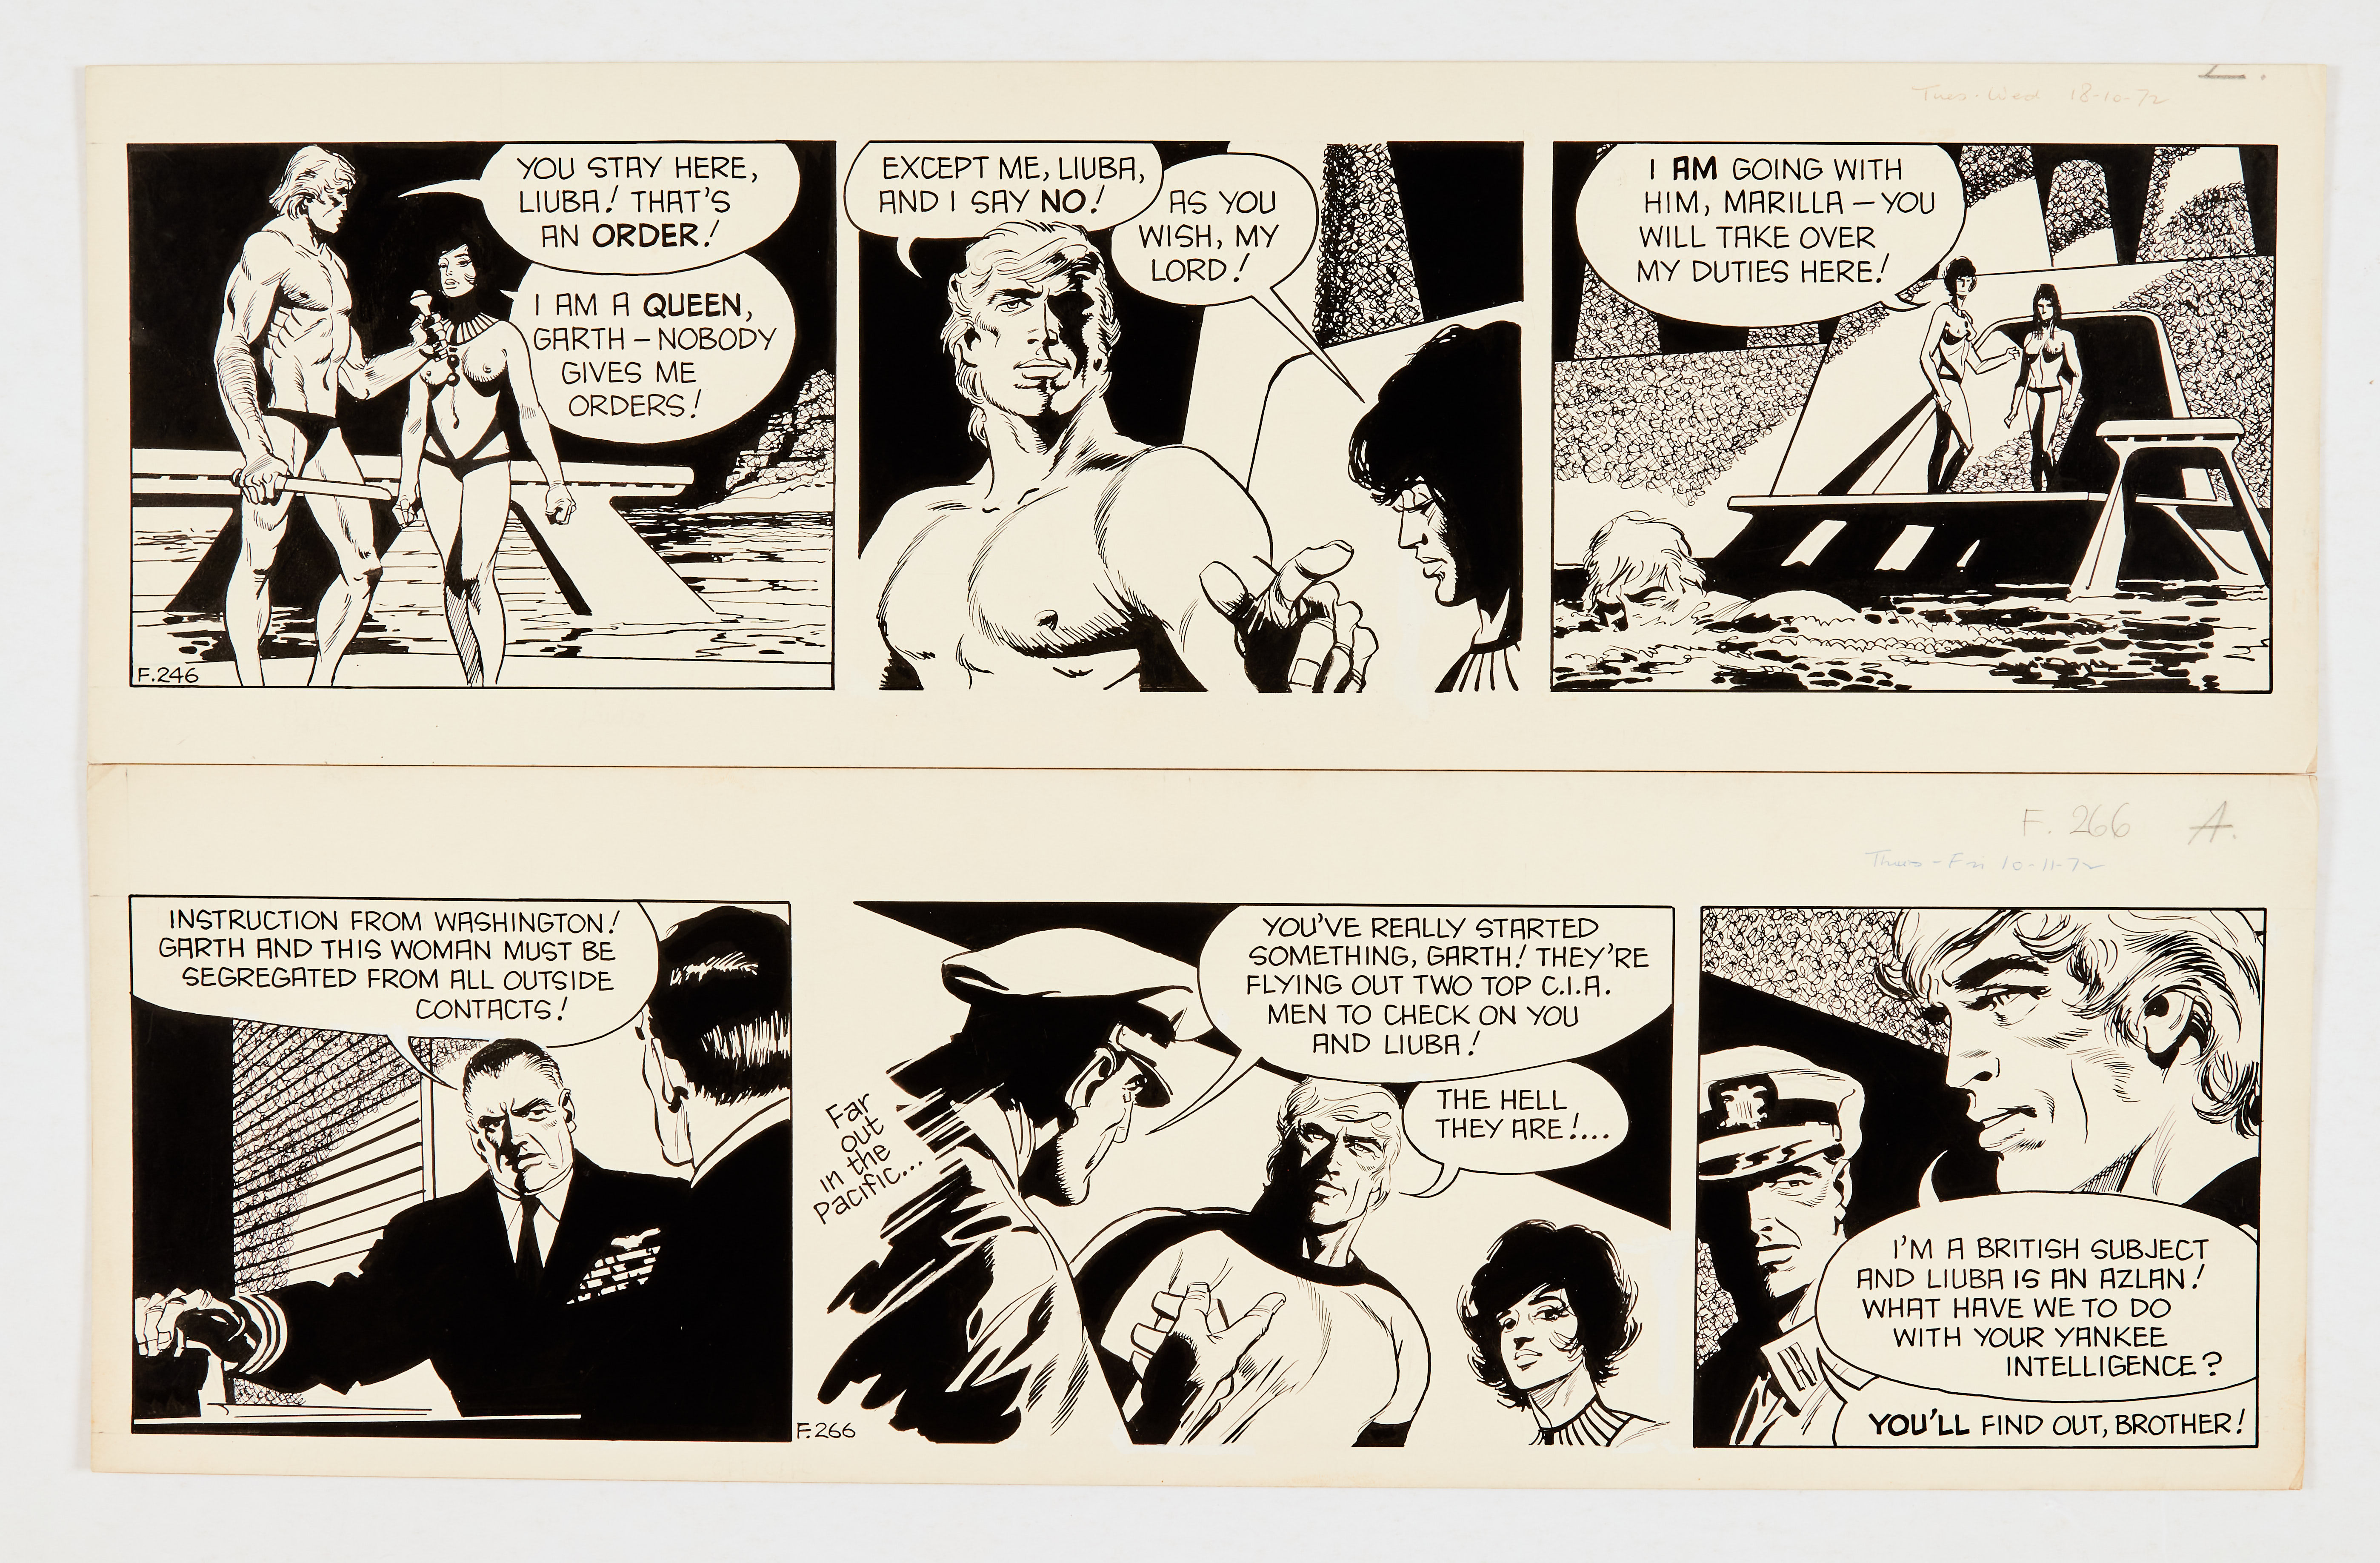 Garth: 'The People of the Abyss' two original artworks (1972) by Frank Bellamy for the Daily